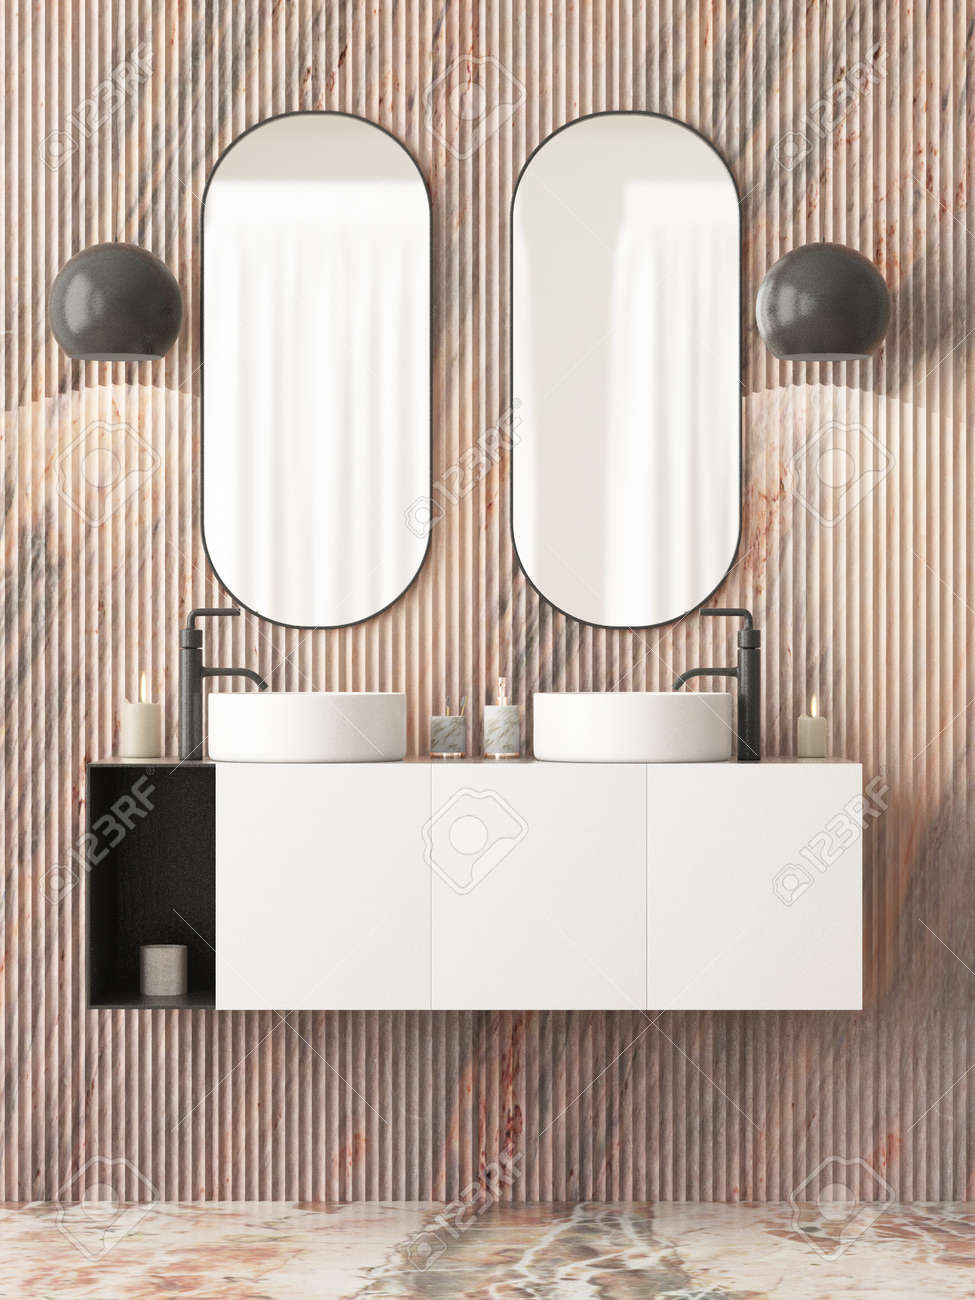 The Interior Of The Bathroom Is In Art Deco Style 3d Illustration Stock Photo Picture And Royalty Free Image Image 103324021